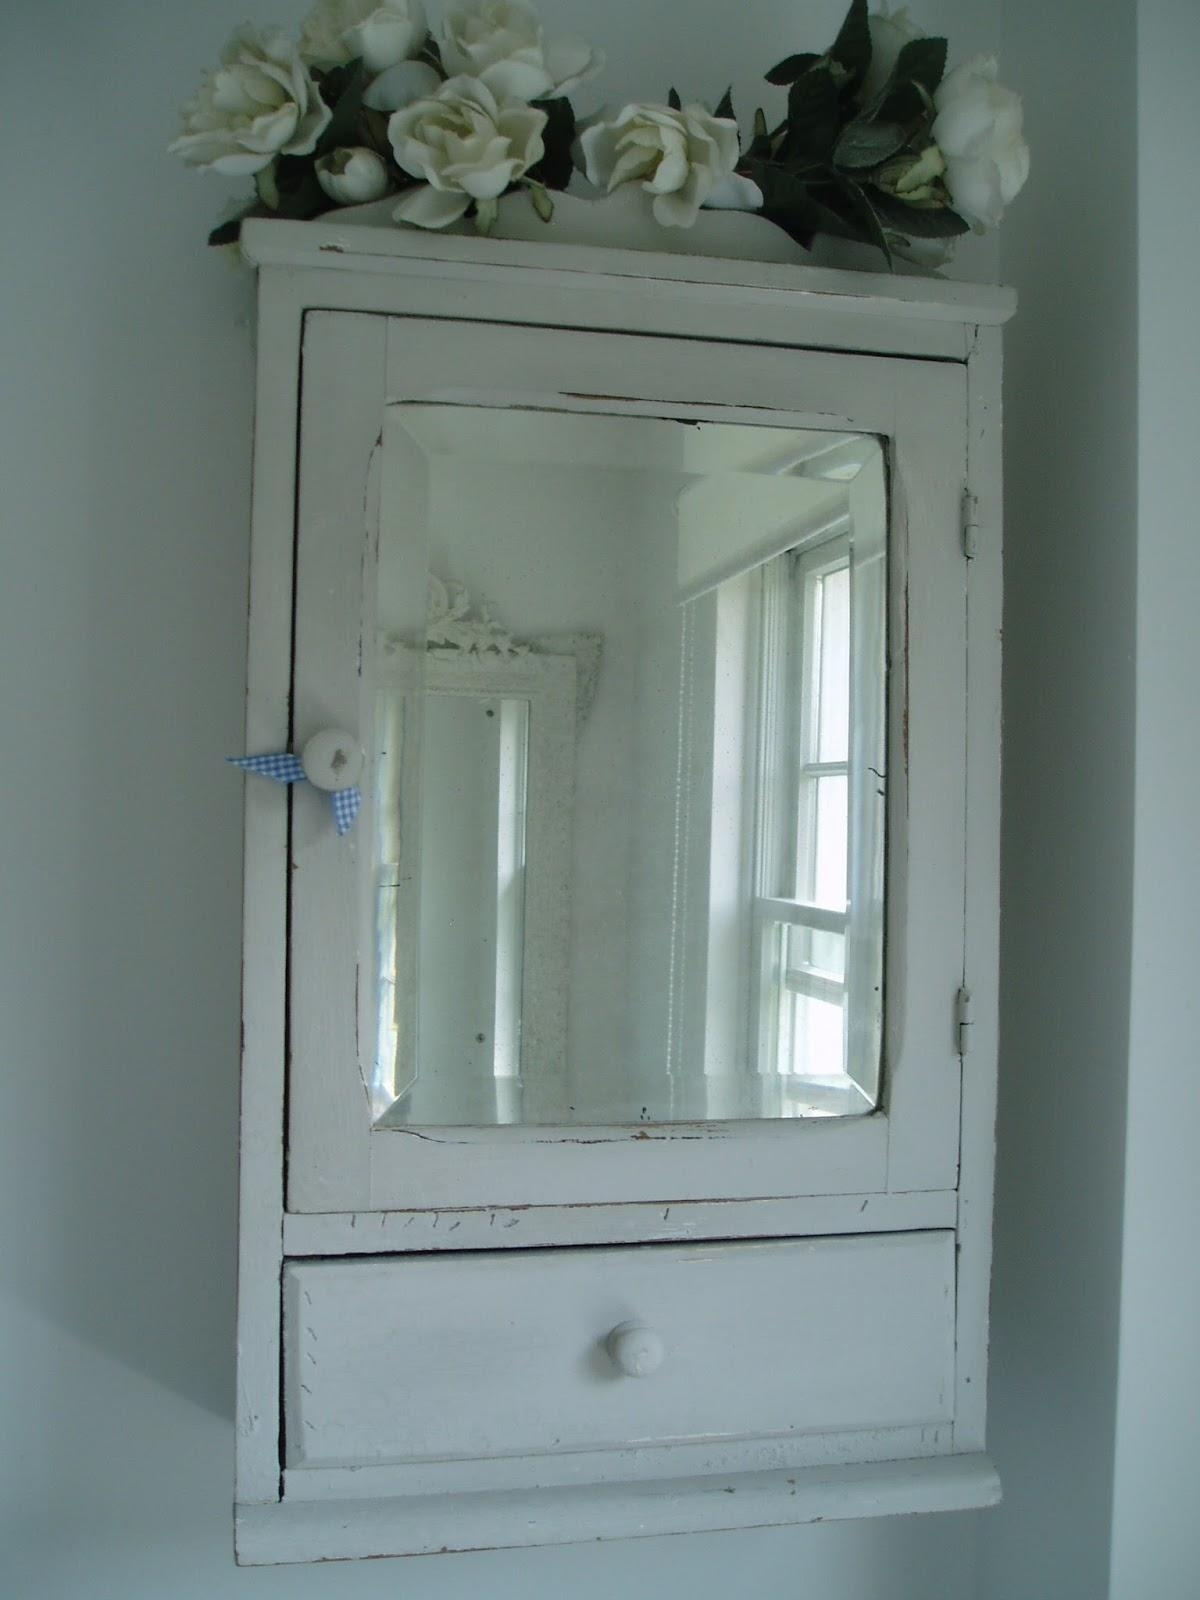 Tremendous Old Fashioned Bathroom Mirrors Buy John Lewis Vintage Within Retro Bathroom Mirror (Image 18 of 20)